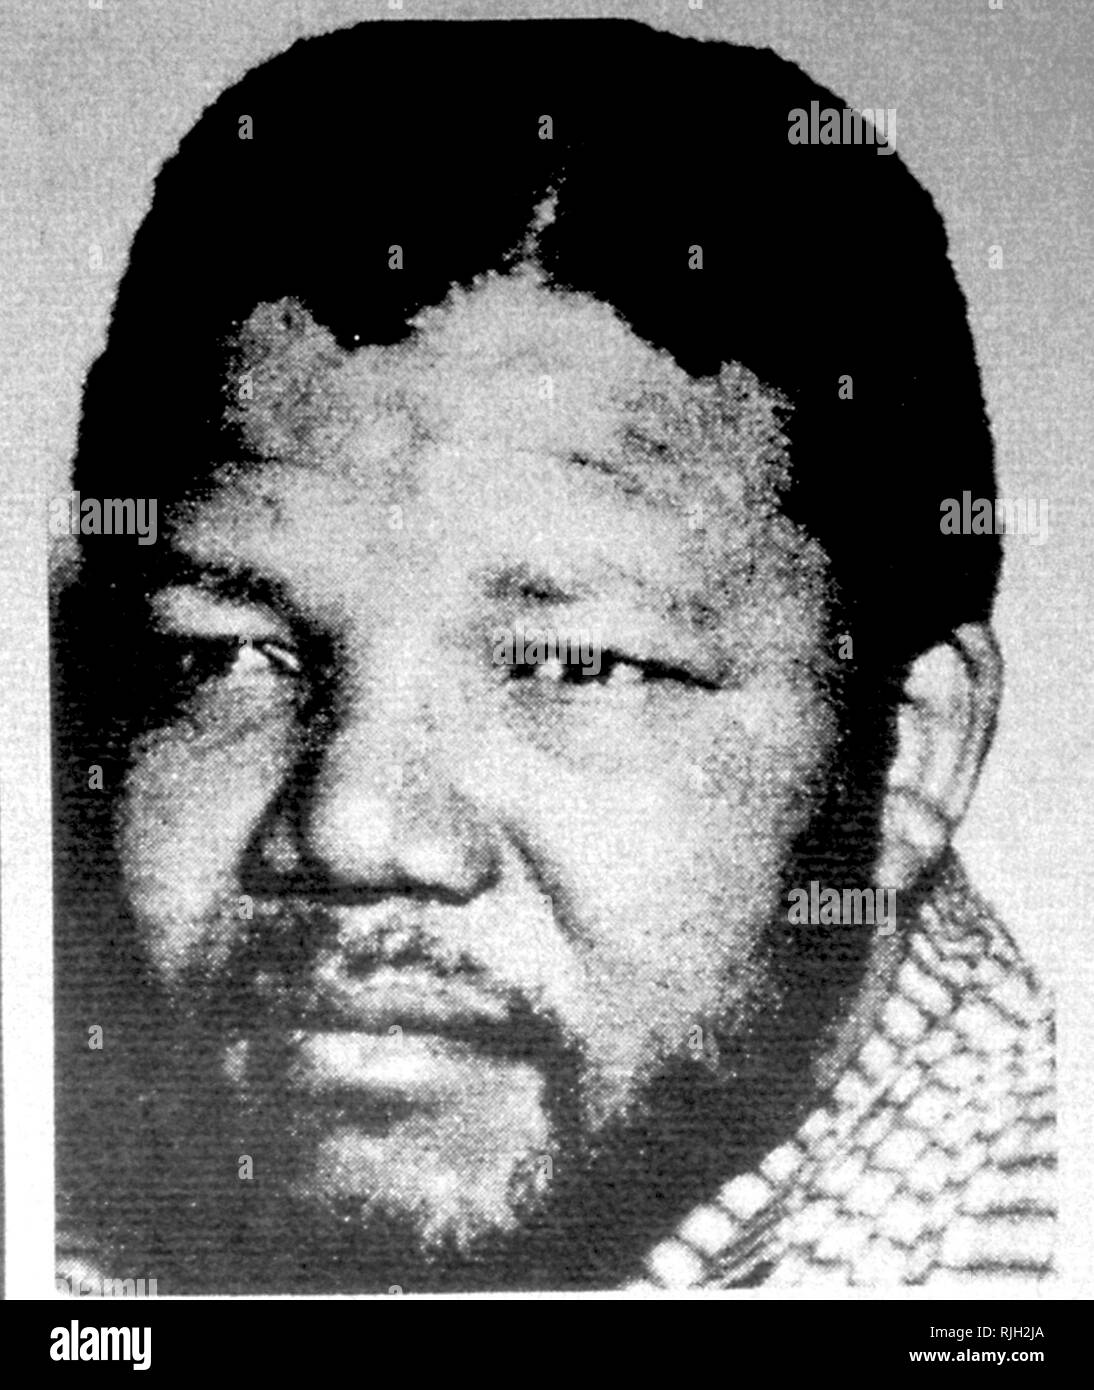 Nelson Mandela 1975. Mandela (1918 - 2013), was a South African anti-apartheid revolutionary, political leader, and philanthropist who served as President of South Africa from 1994 to 1999. - Stock Image